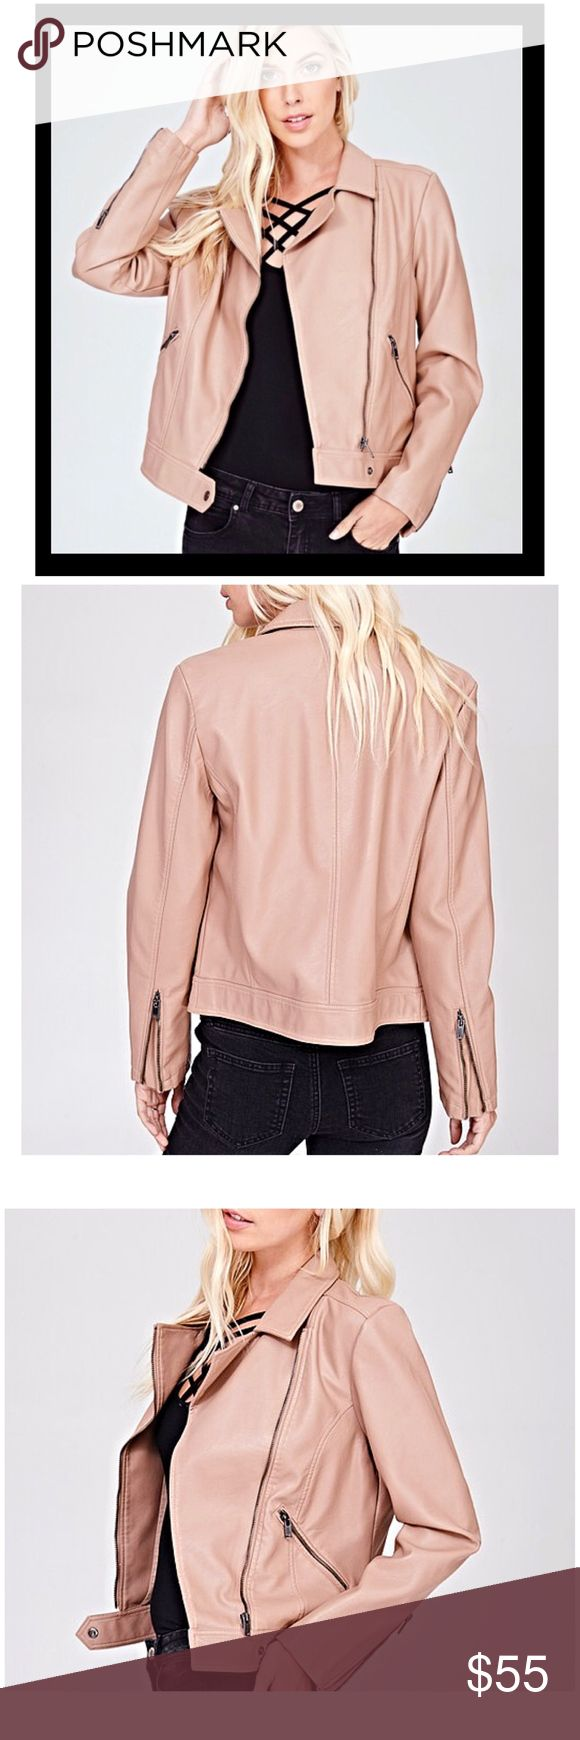 """New Arrival! Vegan Leather Moto Jacket SLEEK BLUSH VEGAN LEATHER MOTO JACKET. CLASSIC MOTORCYCLE JACKET WITH A MODERN TWIST IN PALE PINK. ZIPPER IN THE FRONT. SIDE ZIP POCKETS, SNAP CLOSURE ON THE FRONT. TRUE TO SIZE. BUST S17"""" M19"""" L21"""" LENGTH APPROX. 24"""" FALLS AT THE WAIST. Angelique's Atelier Jackets & Coats"""